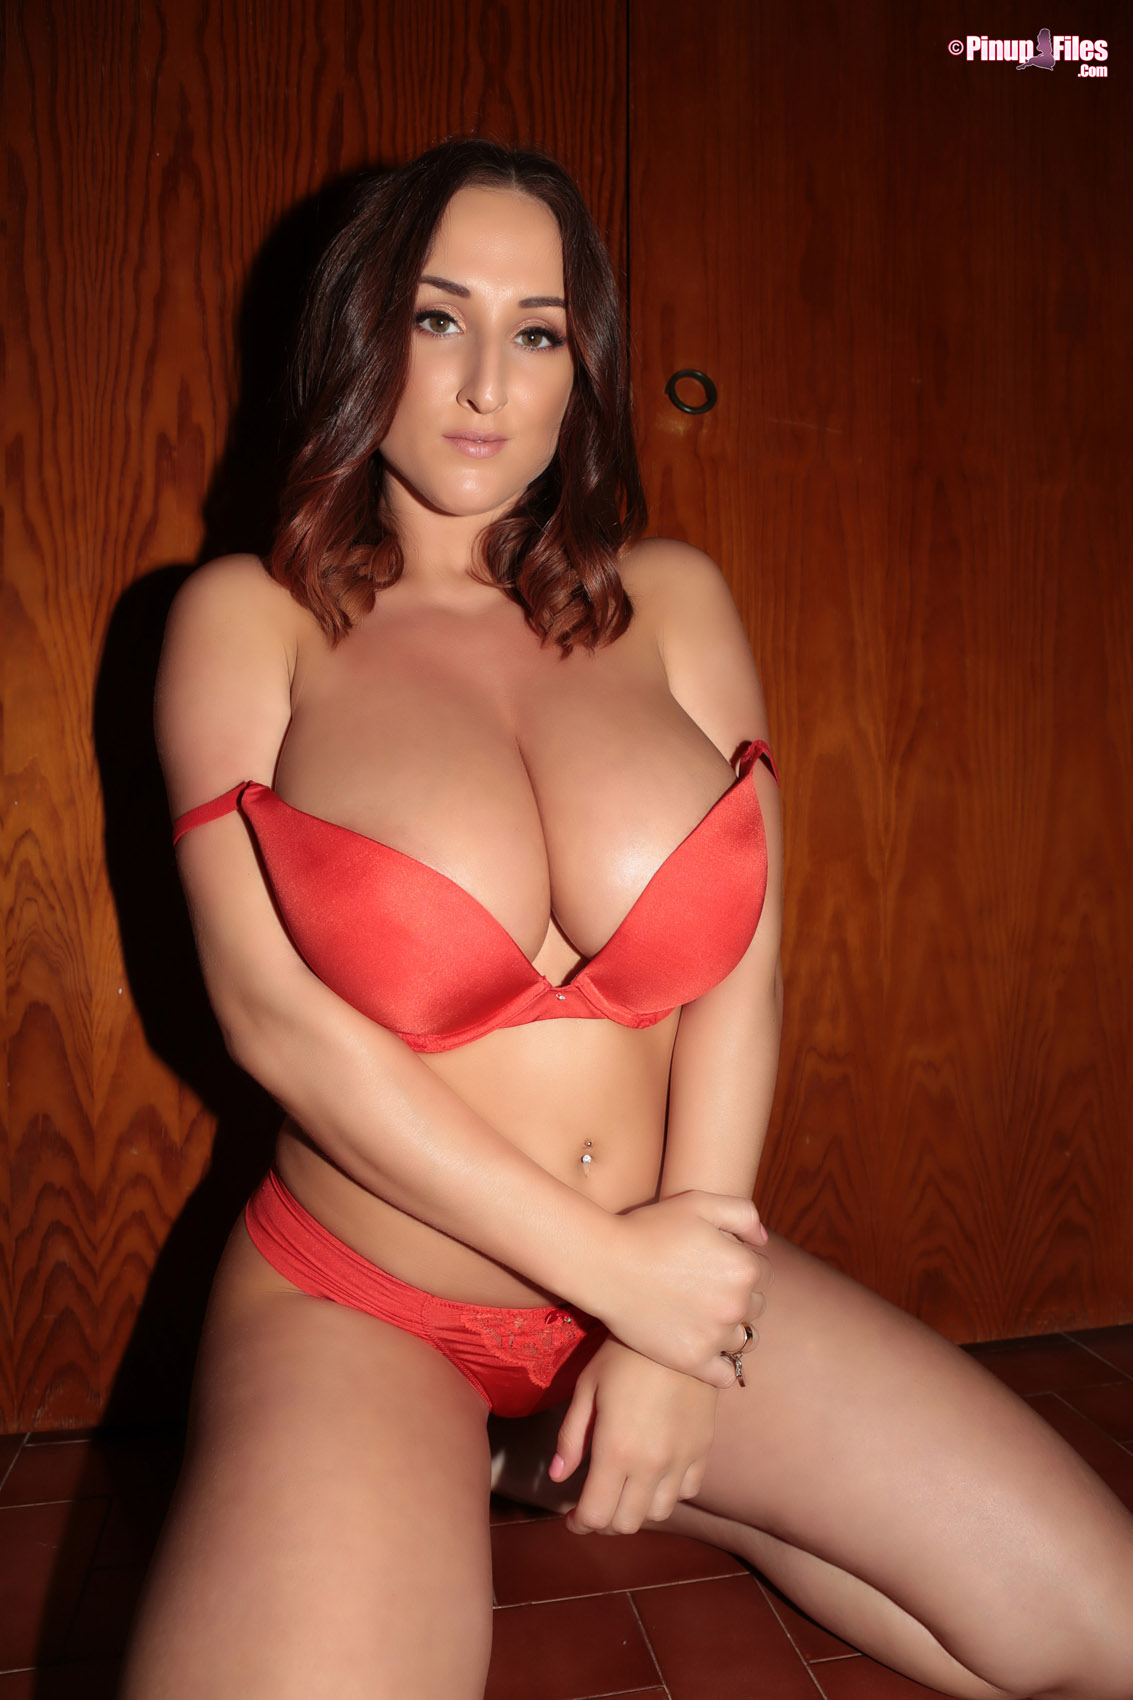 Tits In Lingerie Pics